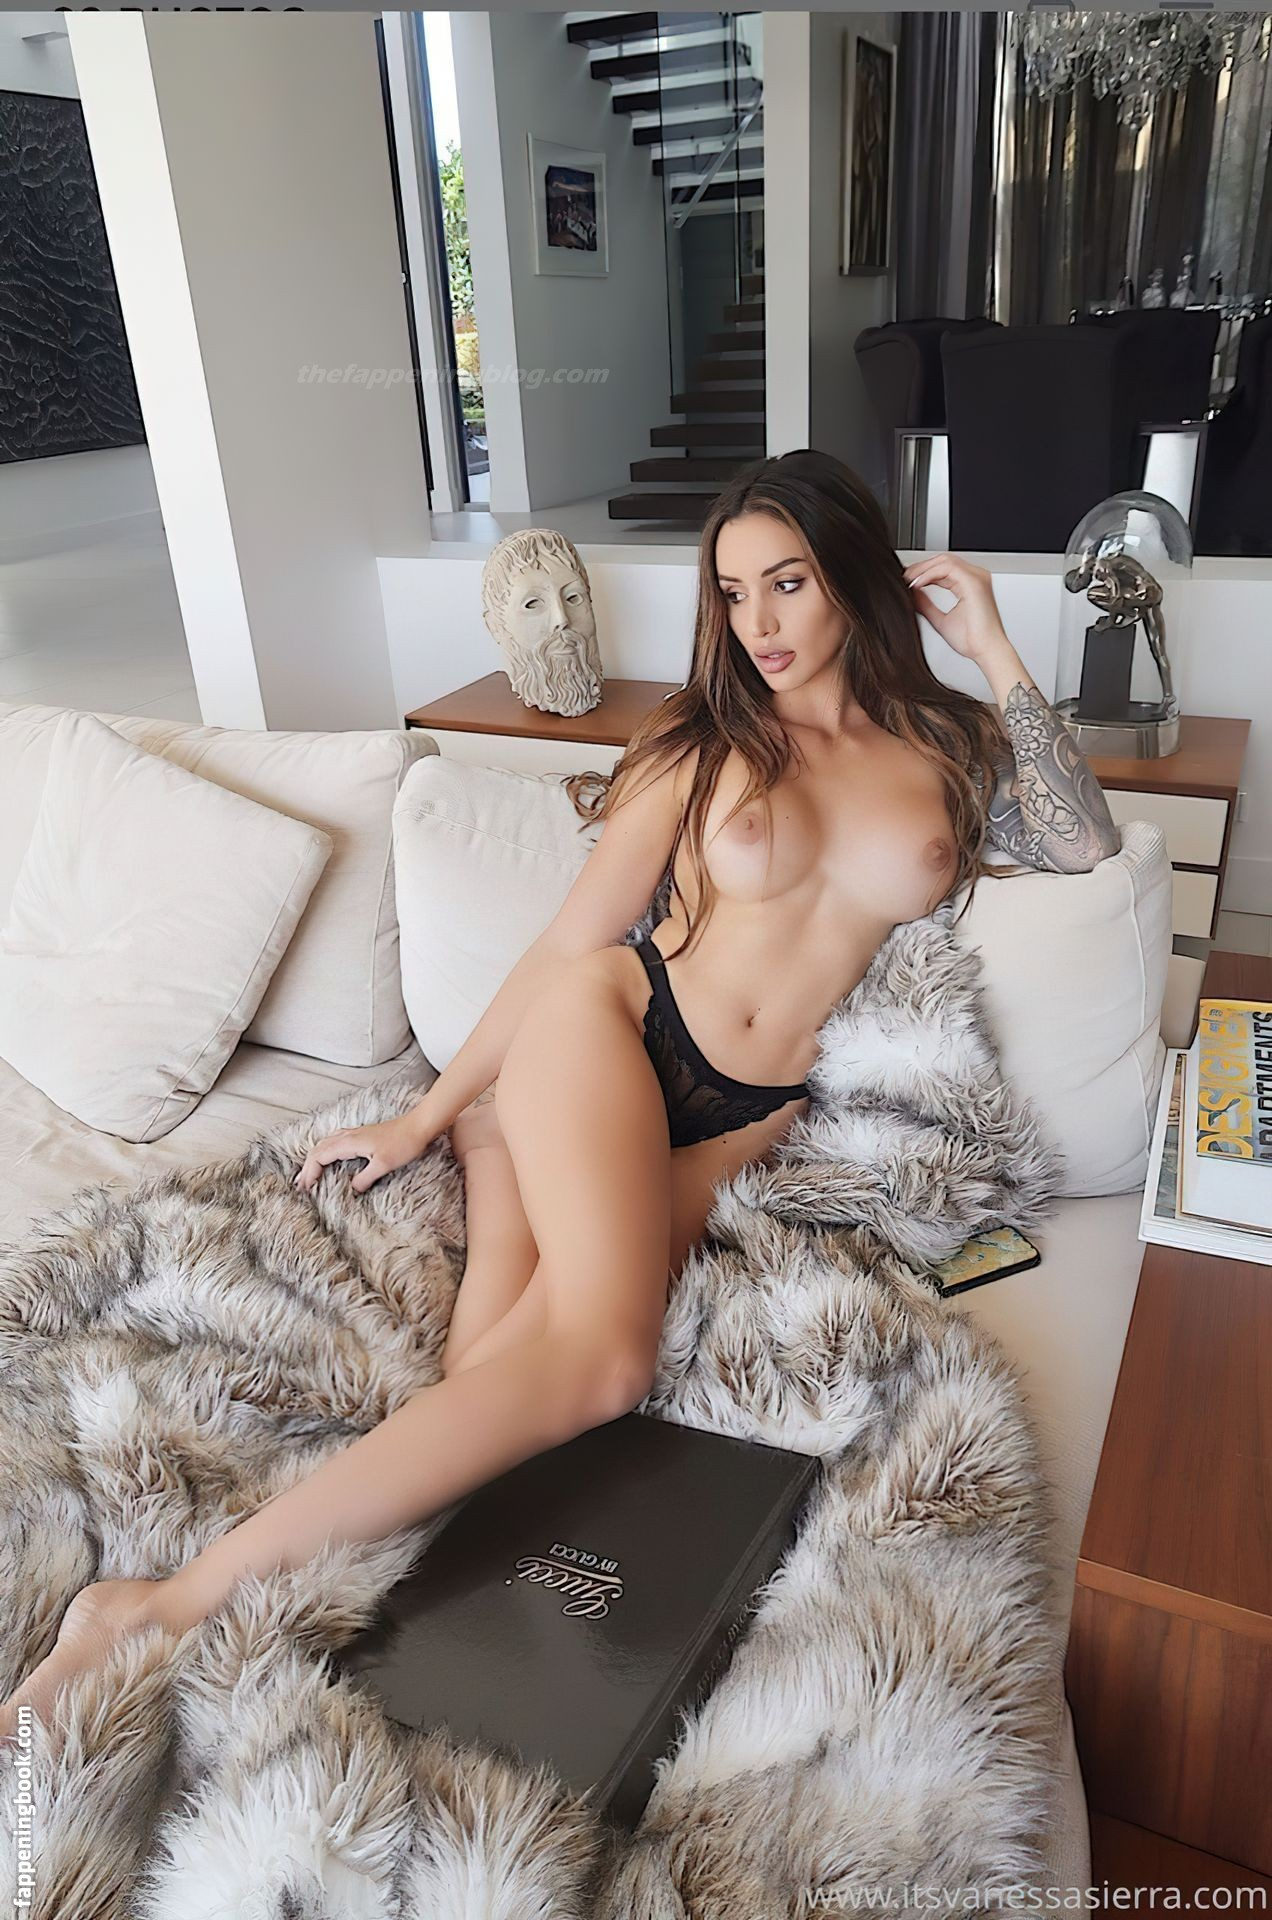 Danielley ayala naked flashing big tits in leaked onlyfans photos